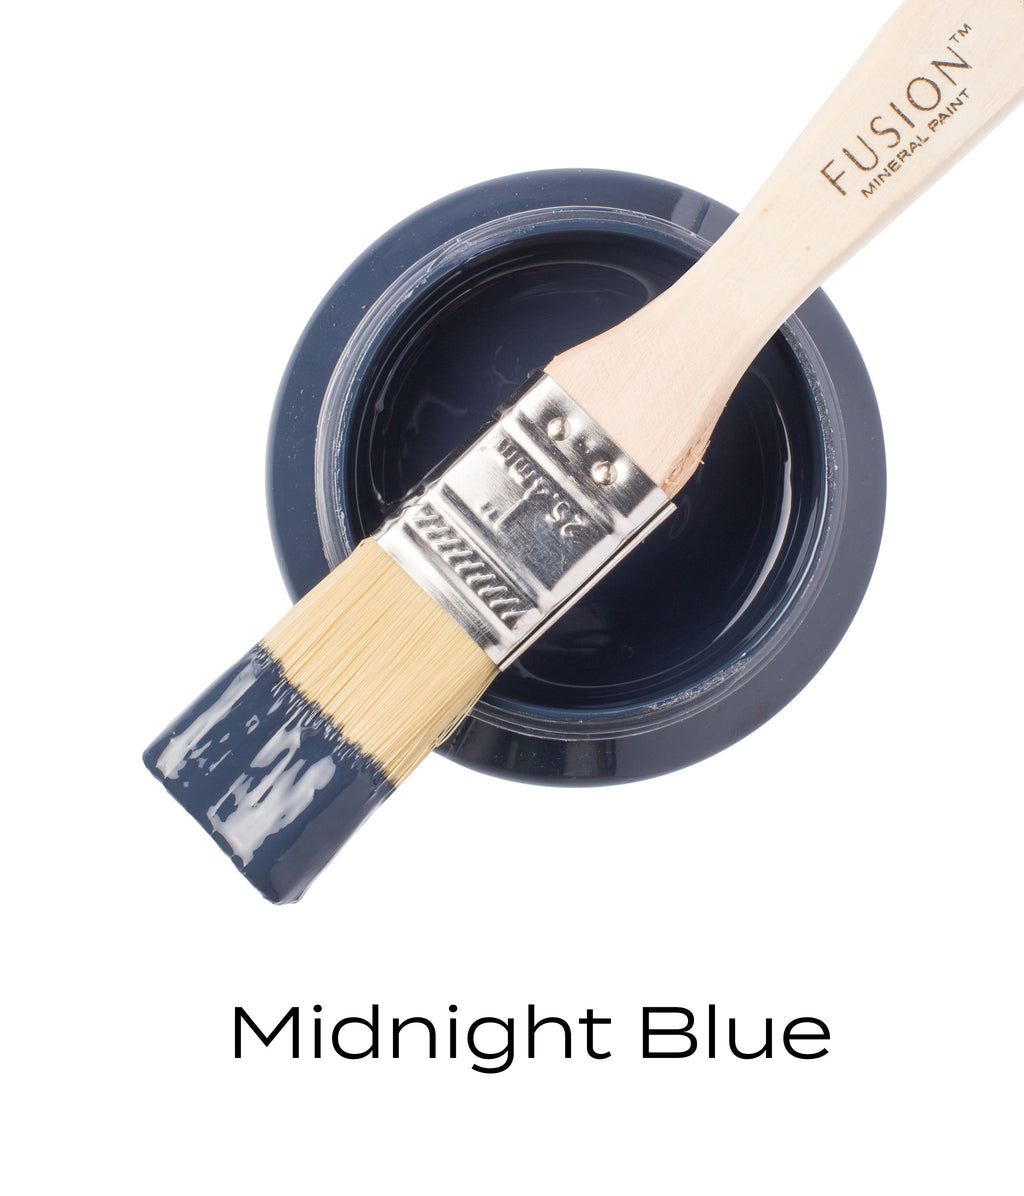 Midnight Blue Fusion Mineral Paint Near Me